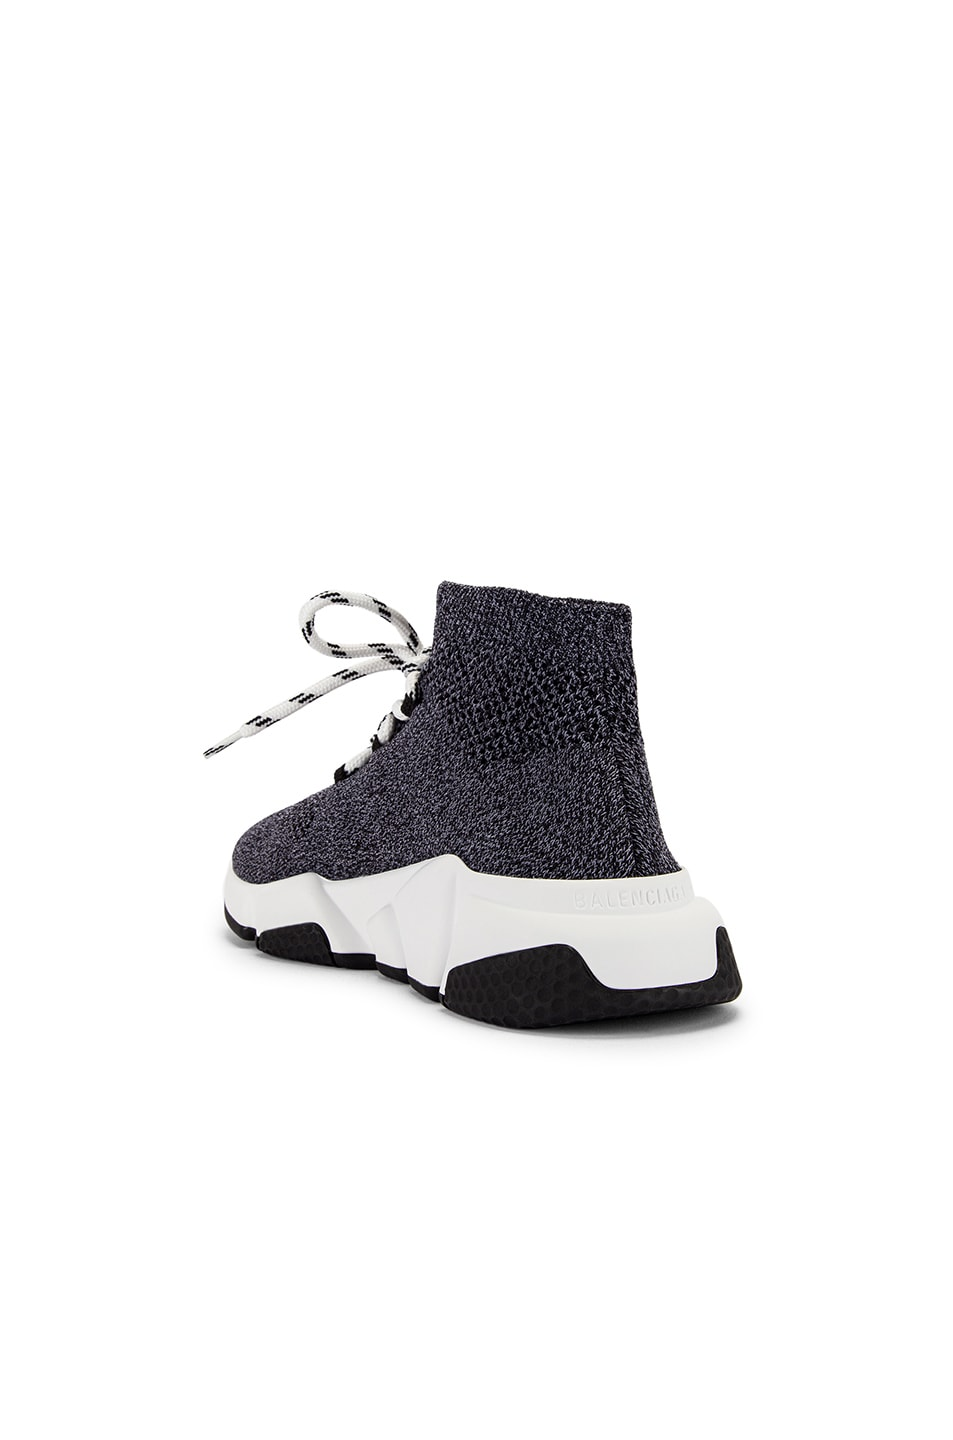 Image 3 of Balenciaga Speed Lace Up Knit Sneakers in Black & White